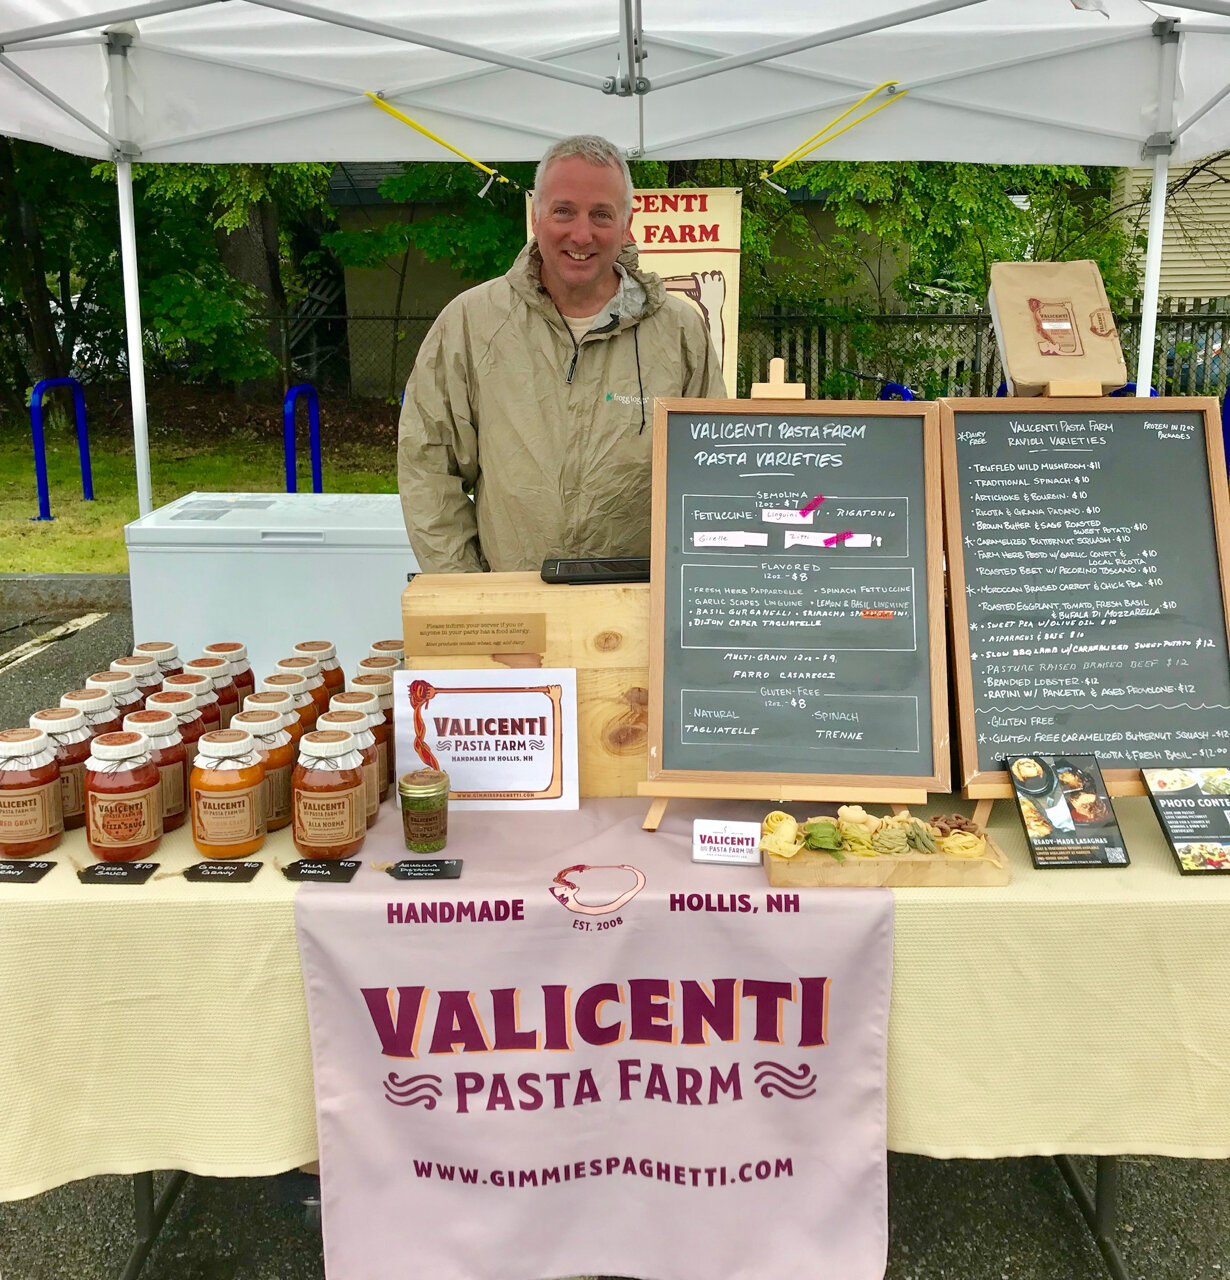 Valicenti Pasta FarM - Hollis, NHEvery other week: 6/13, 6/27, 7/11, 7/25, 8/8, 8/22, 9/5, 9/19, 10/3, 10/17, 10/31GimmieSpaghetti.comInstagram: @Valicenti_Pasta_FarmTwitter: @ValicentiPastaFacebook: @ValicentiPastaFarmFresh pasta and sauces made from our own organic ingredients, or locally-grown ingredients. We cook as if we're cooking for family and friends.